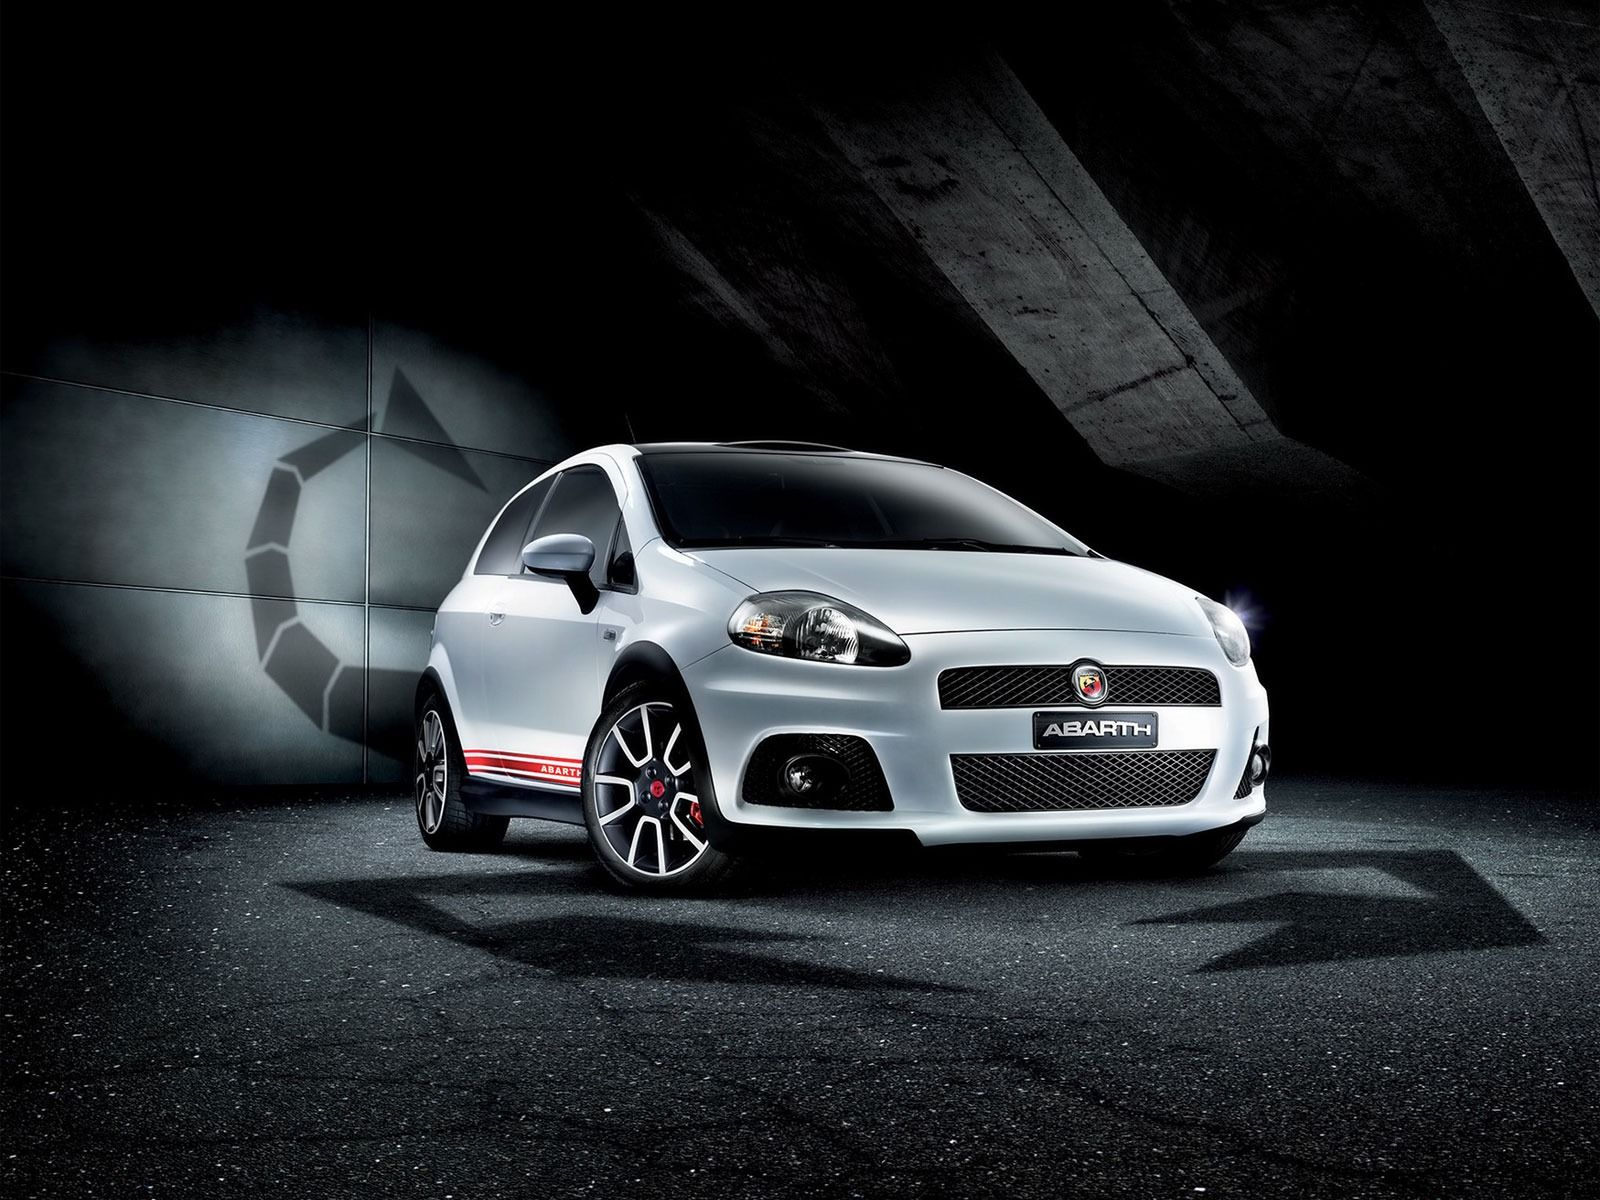 Fiat Grande Punto Abarth Wallpaper Fiat Cars Wallpapers In Fiat